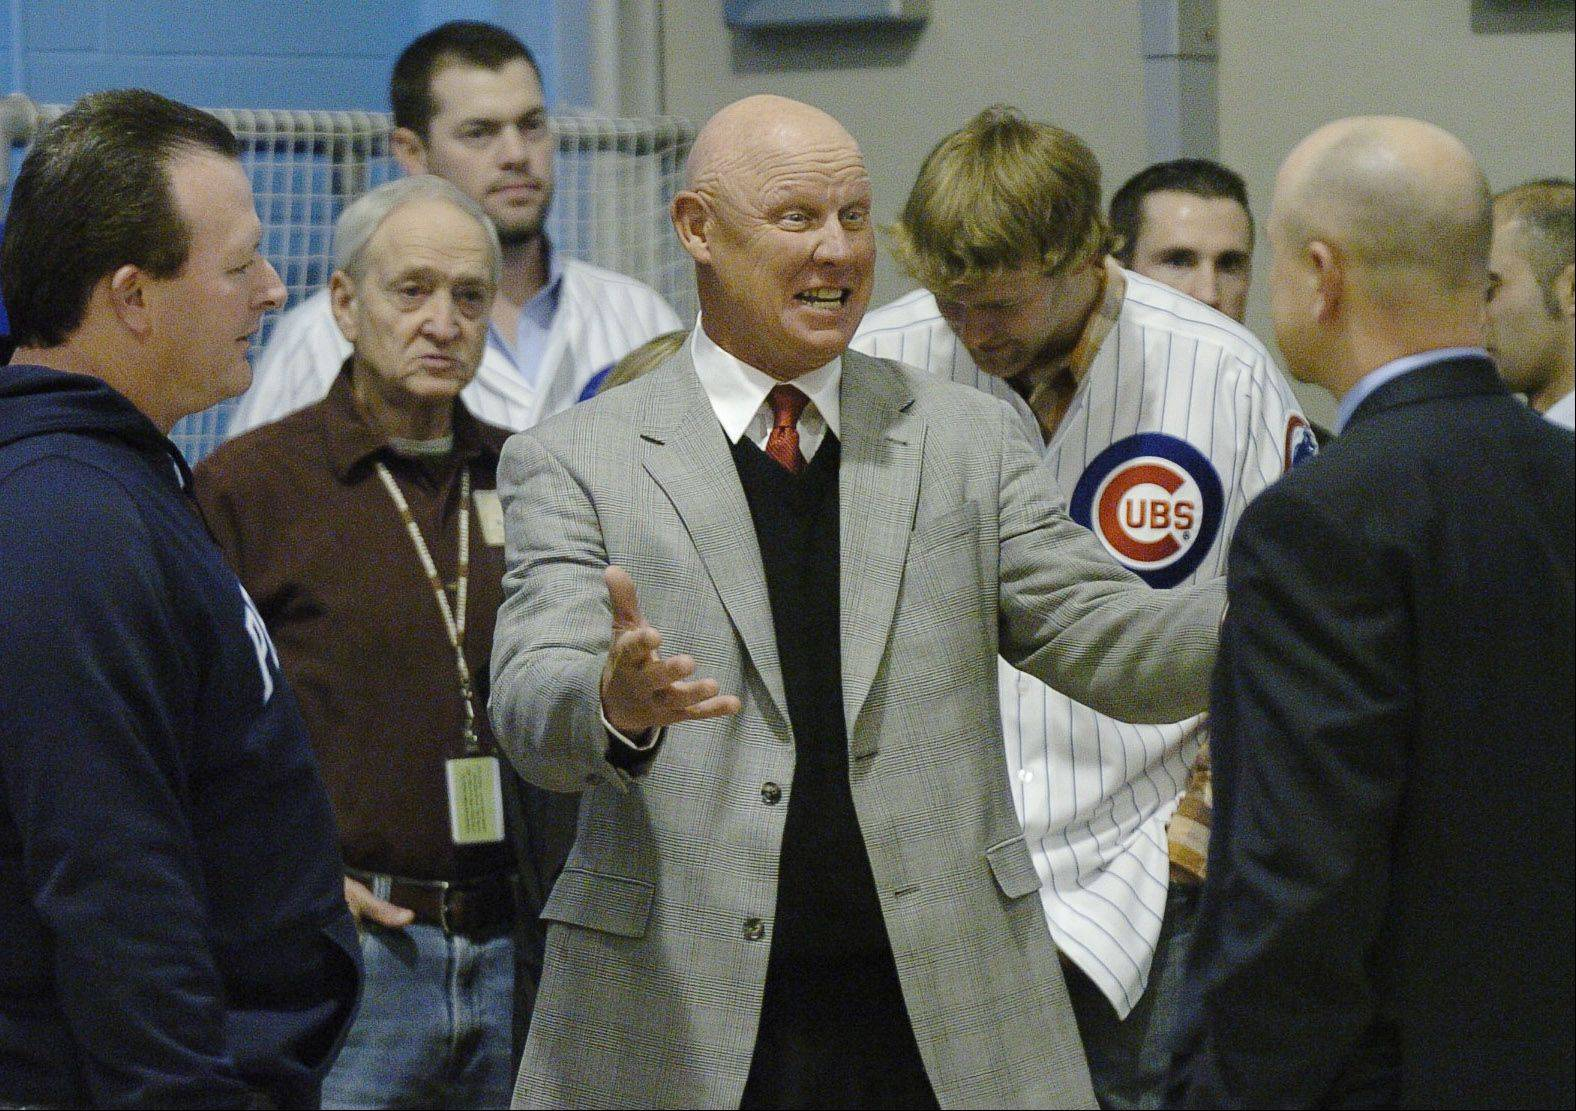 Cubs manager Mike Quade is greeted by principal Kurt Laakso, right, and baseball coach Ross Giusti, left, as he arrives for his visit to his Alma Mater, Prospect High.